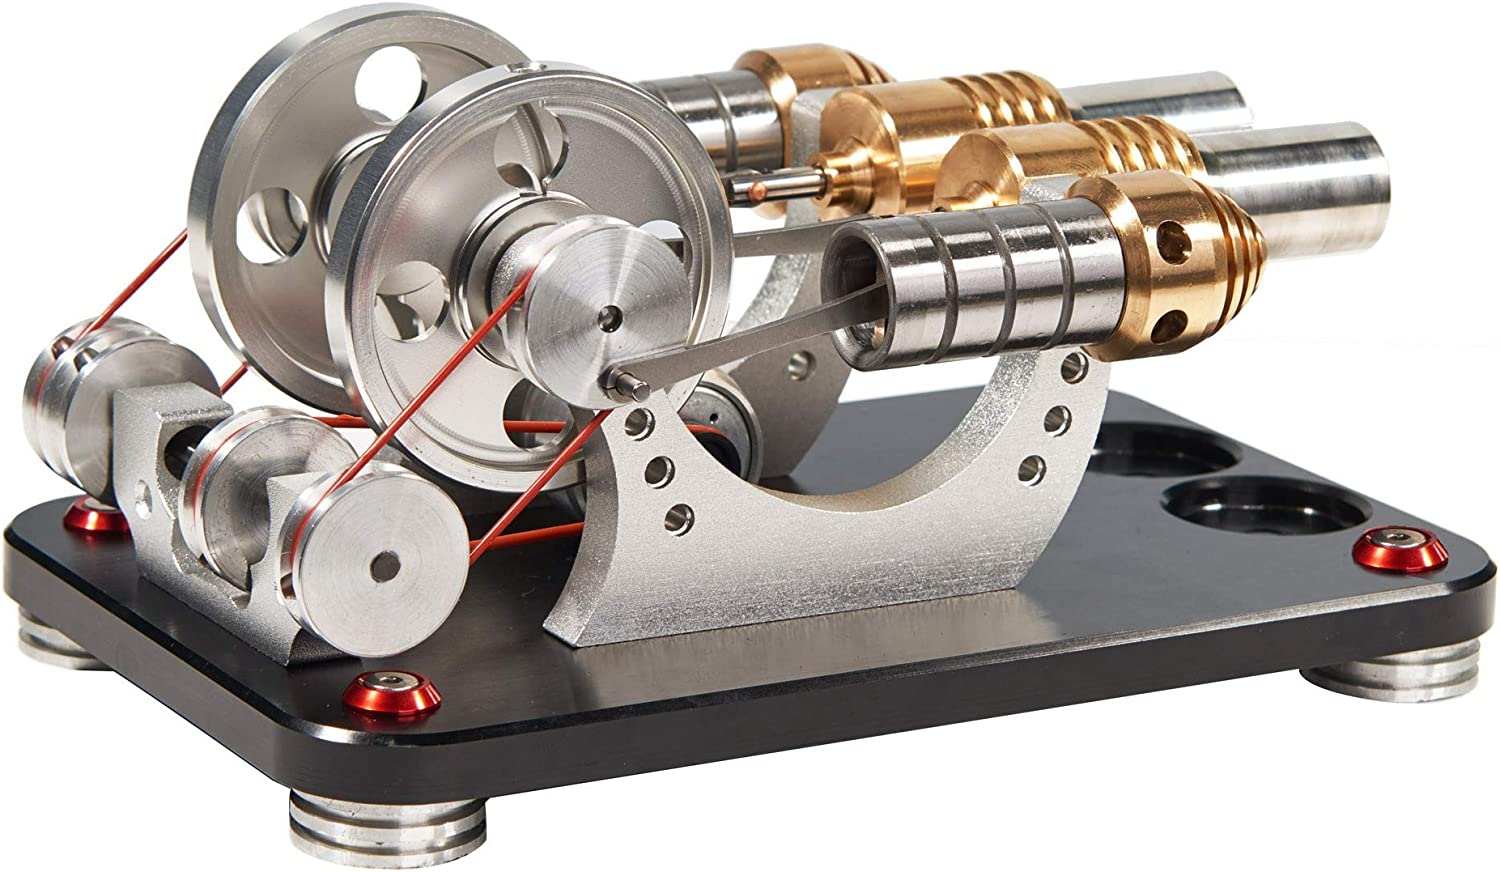 Large special price Sunnytech Hot Air Stirling Engine Education Generator Motor Toy Tulsa Mall